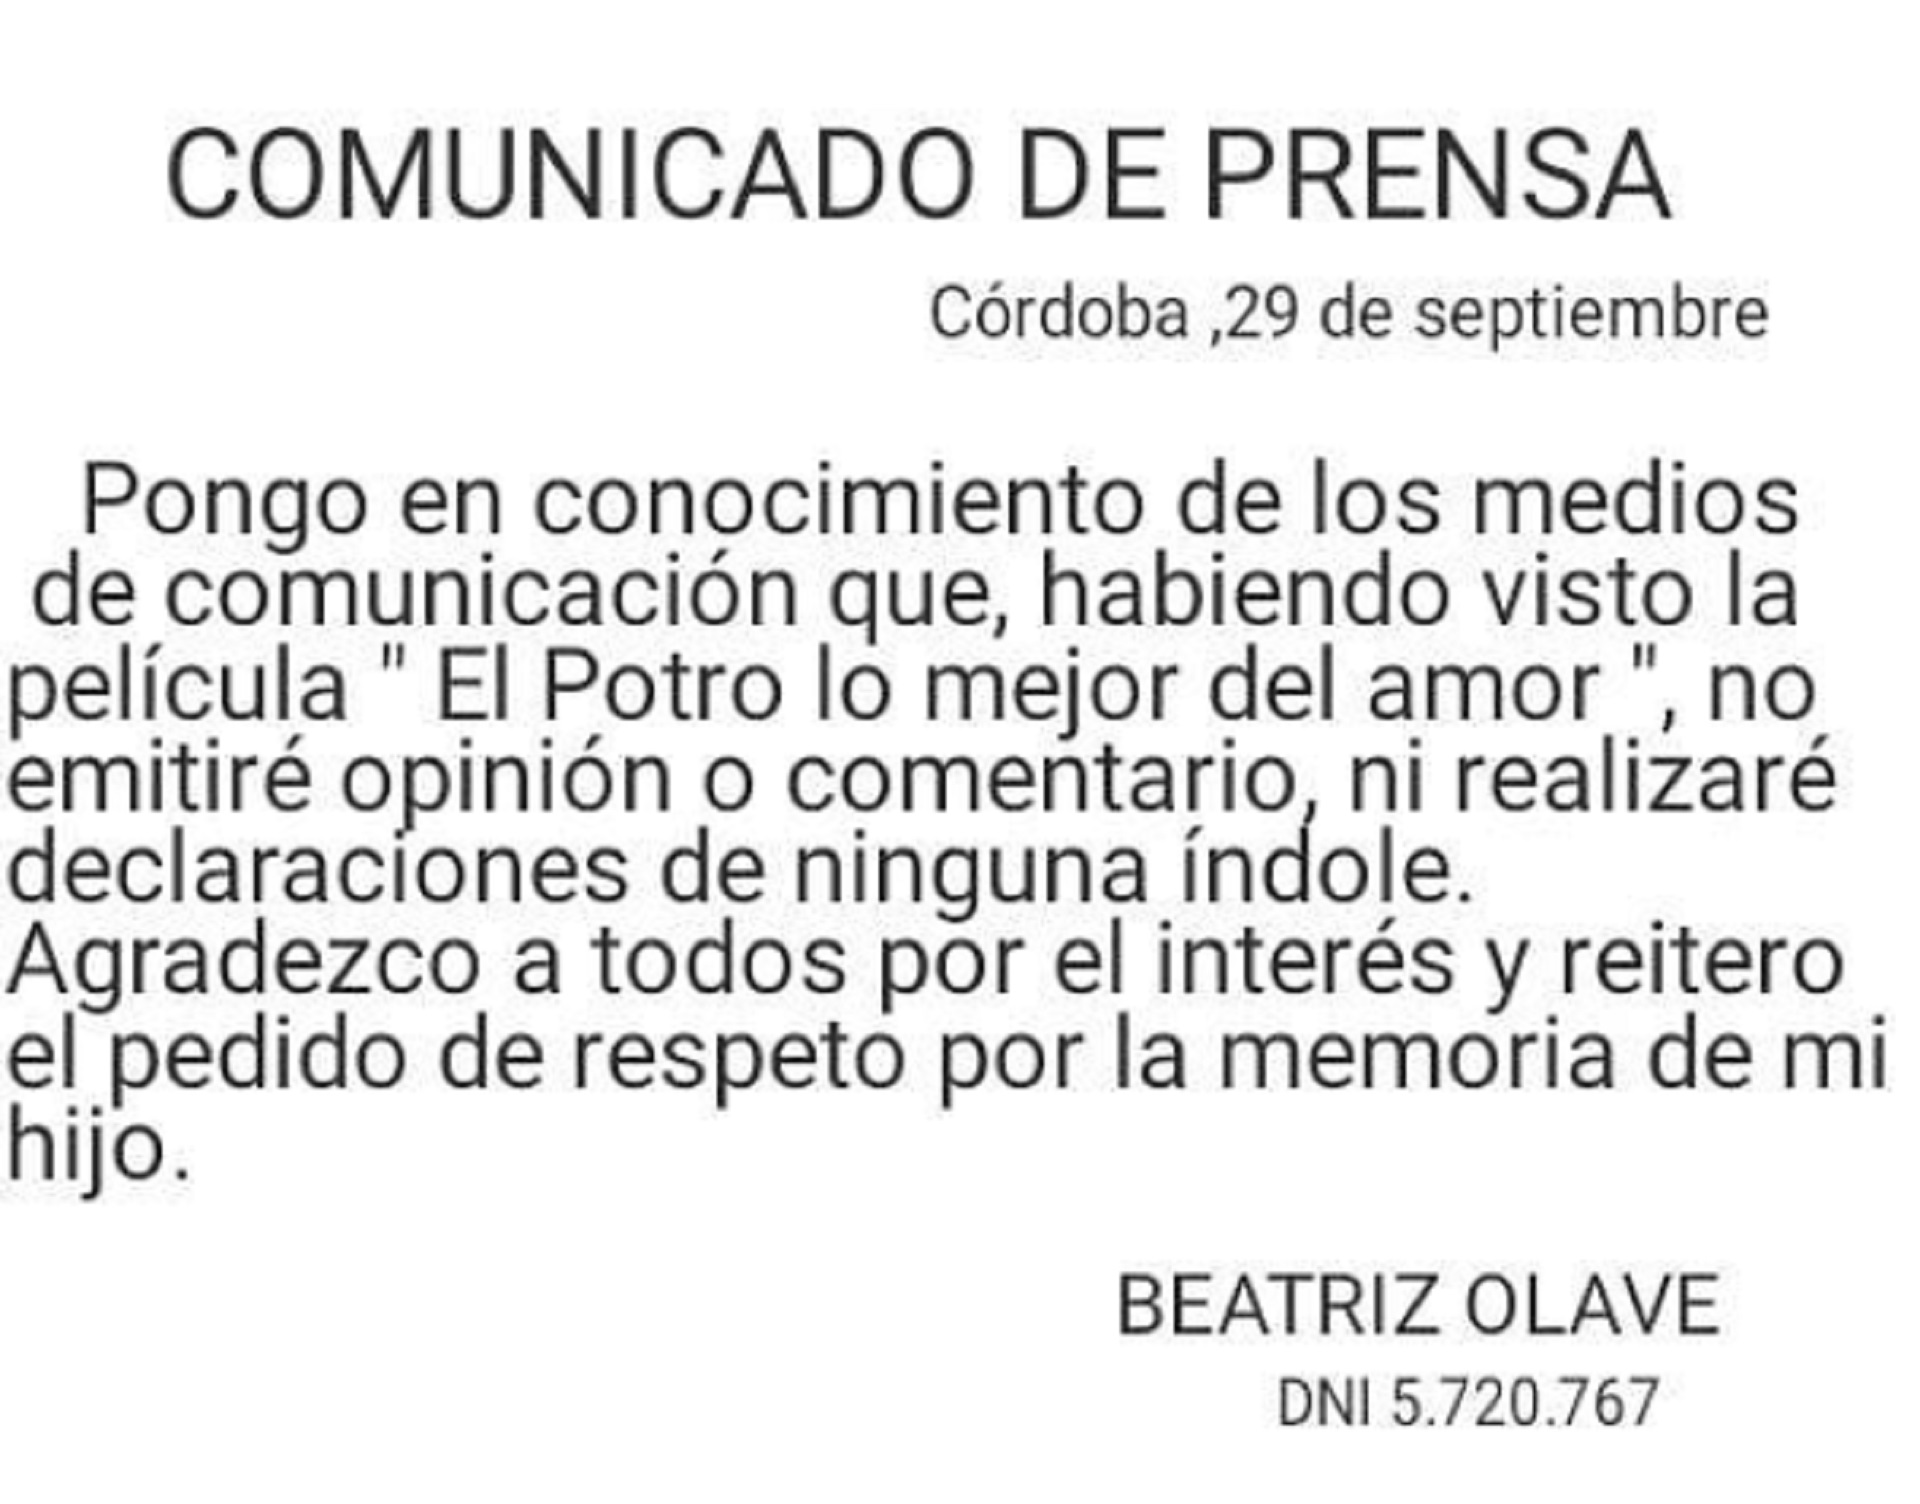 El comunicado oficial de Betty Olave